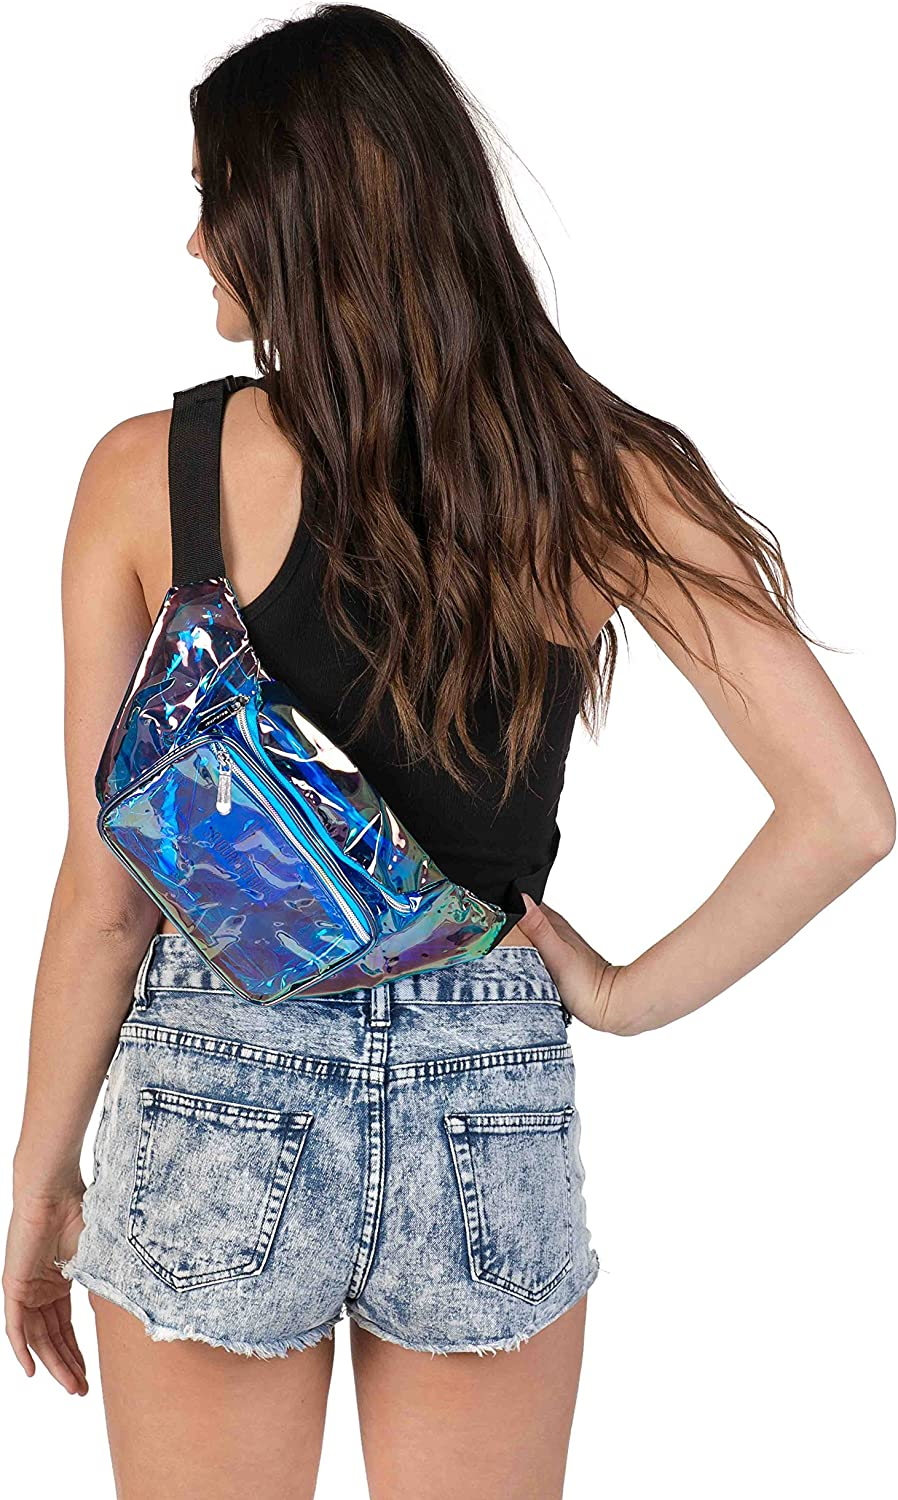 men Cute Fashion Waist Bag Belt Bags SoJourner Mermaid Rave Fanny Pack Packs for festival women Holographic Green